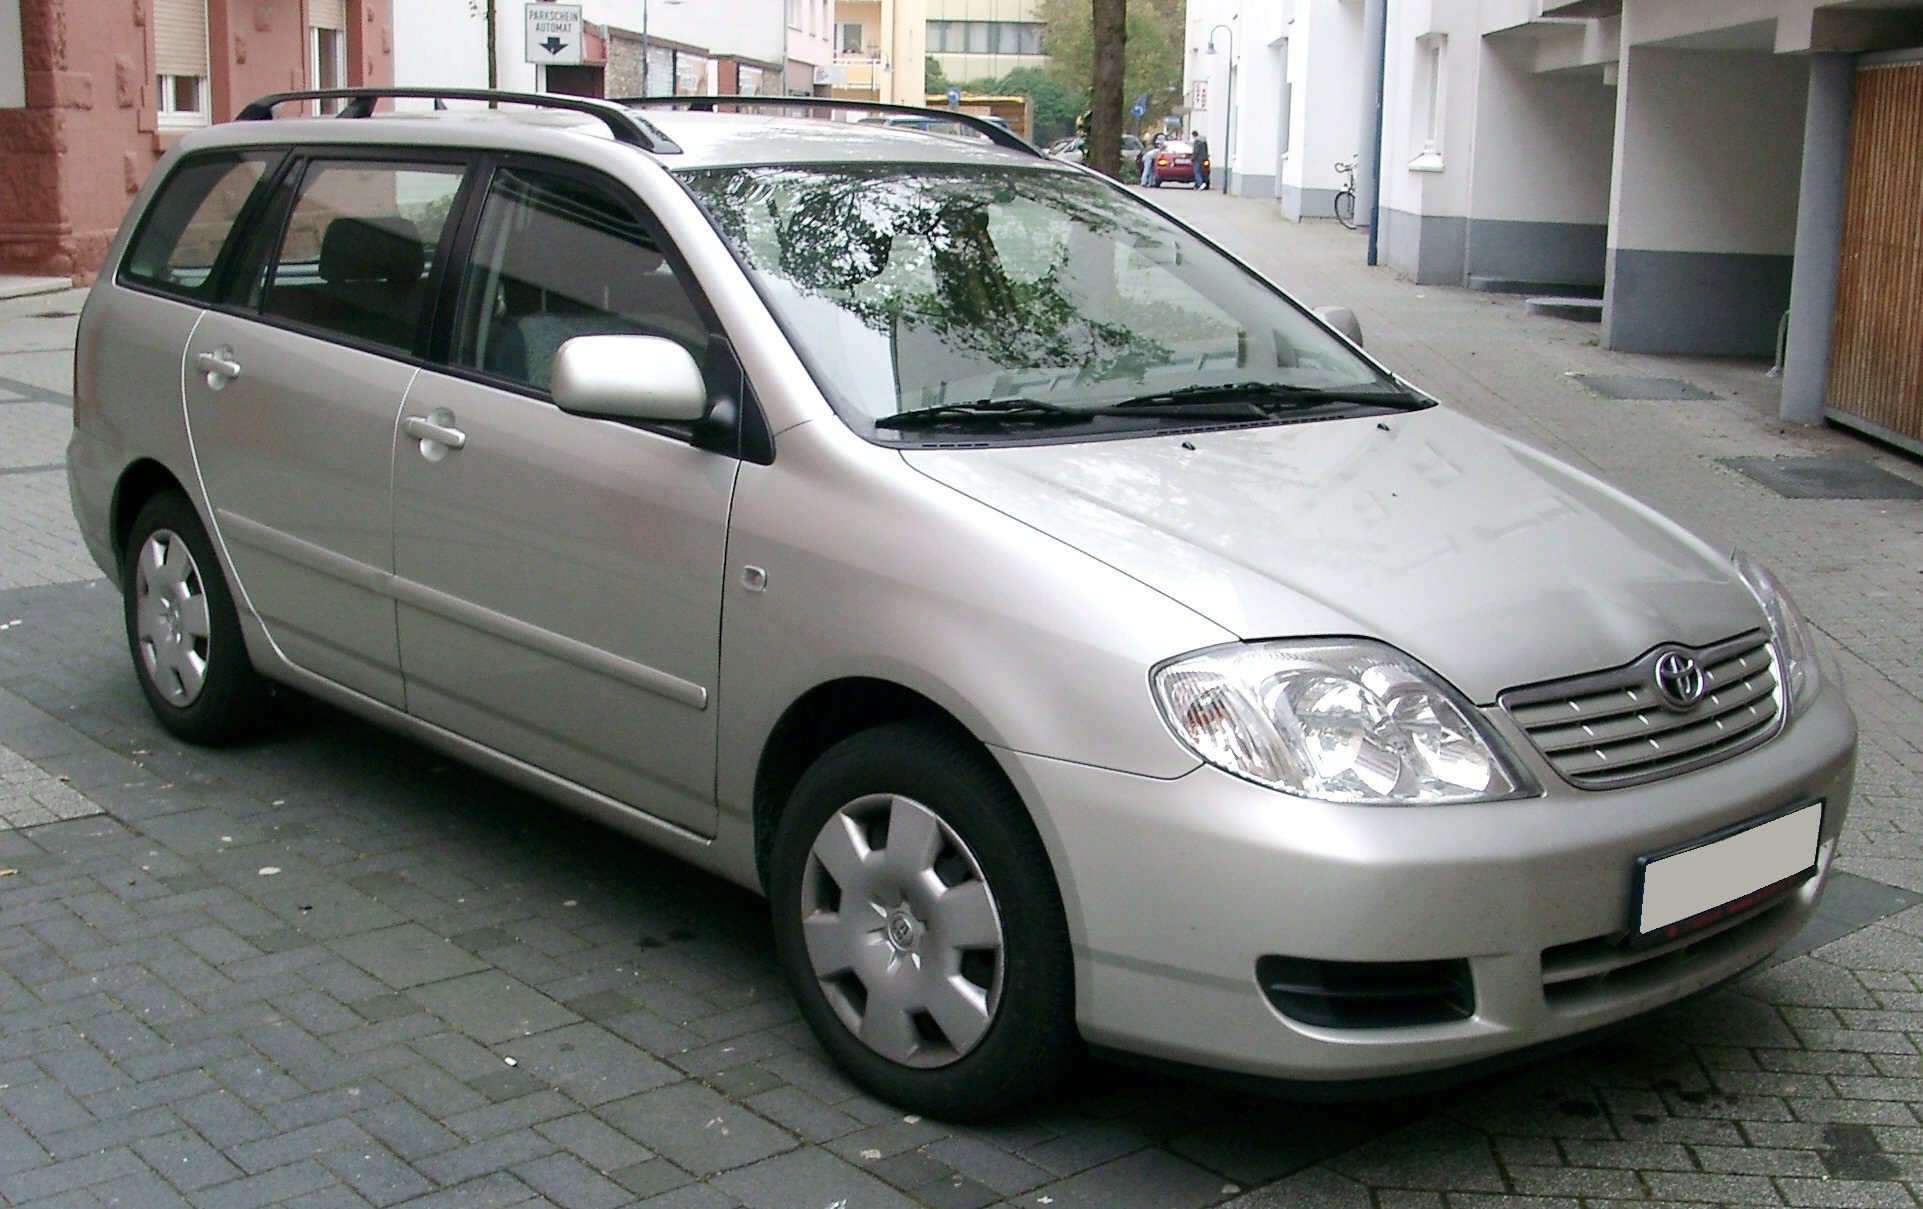 2002 toyota corolla hatchback e12 pictures information and specs auto. Black Bedroom Furniture Sets. Home Design Ideas